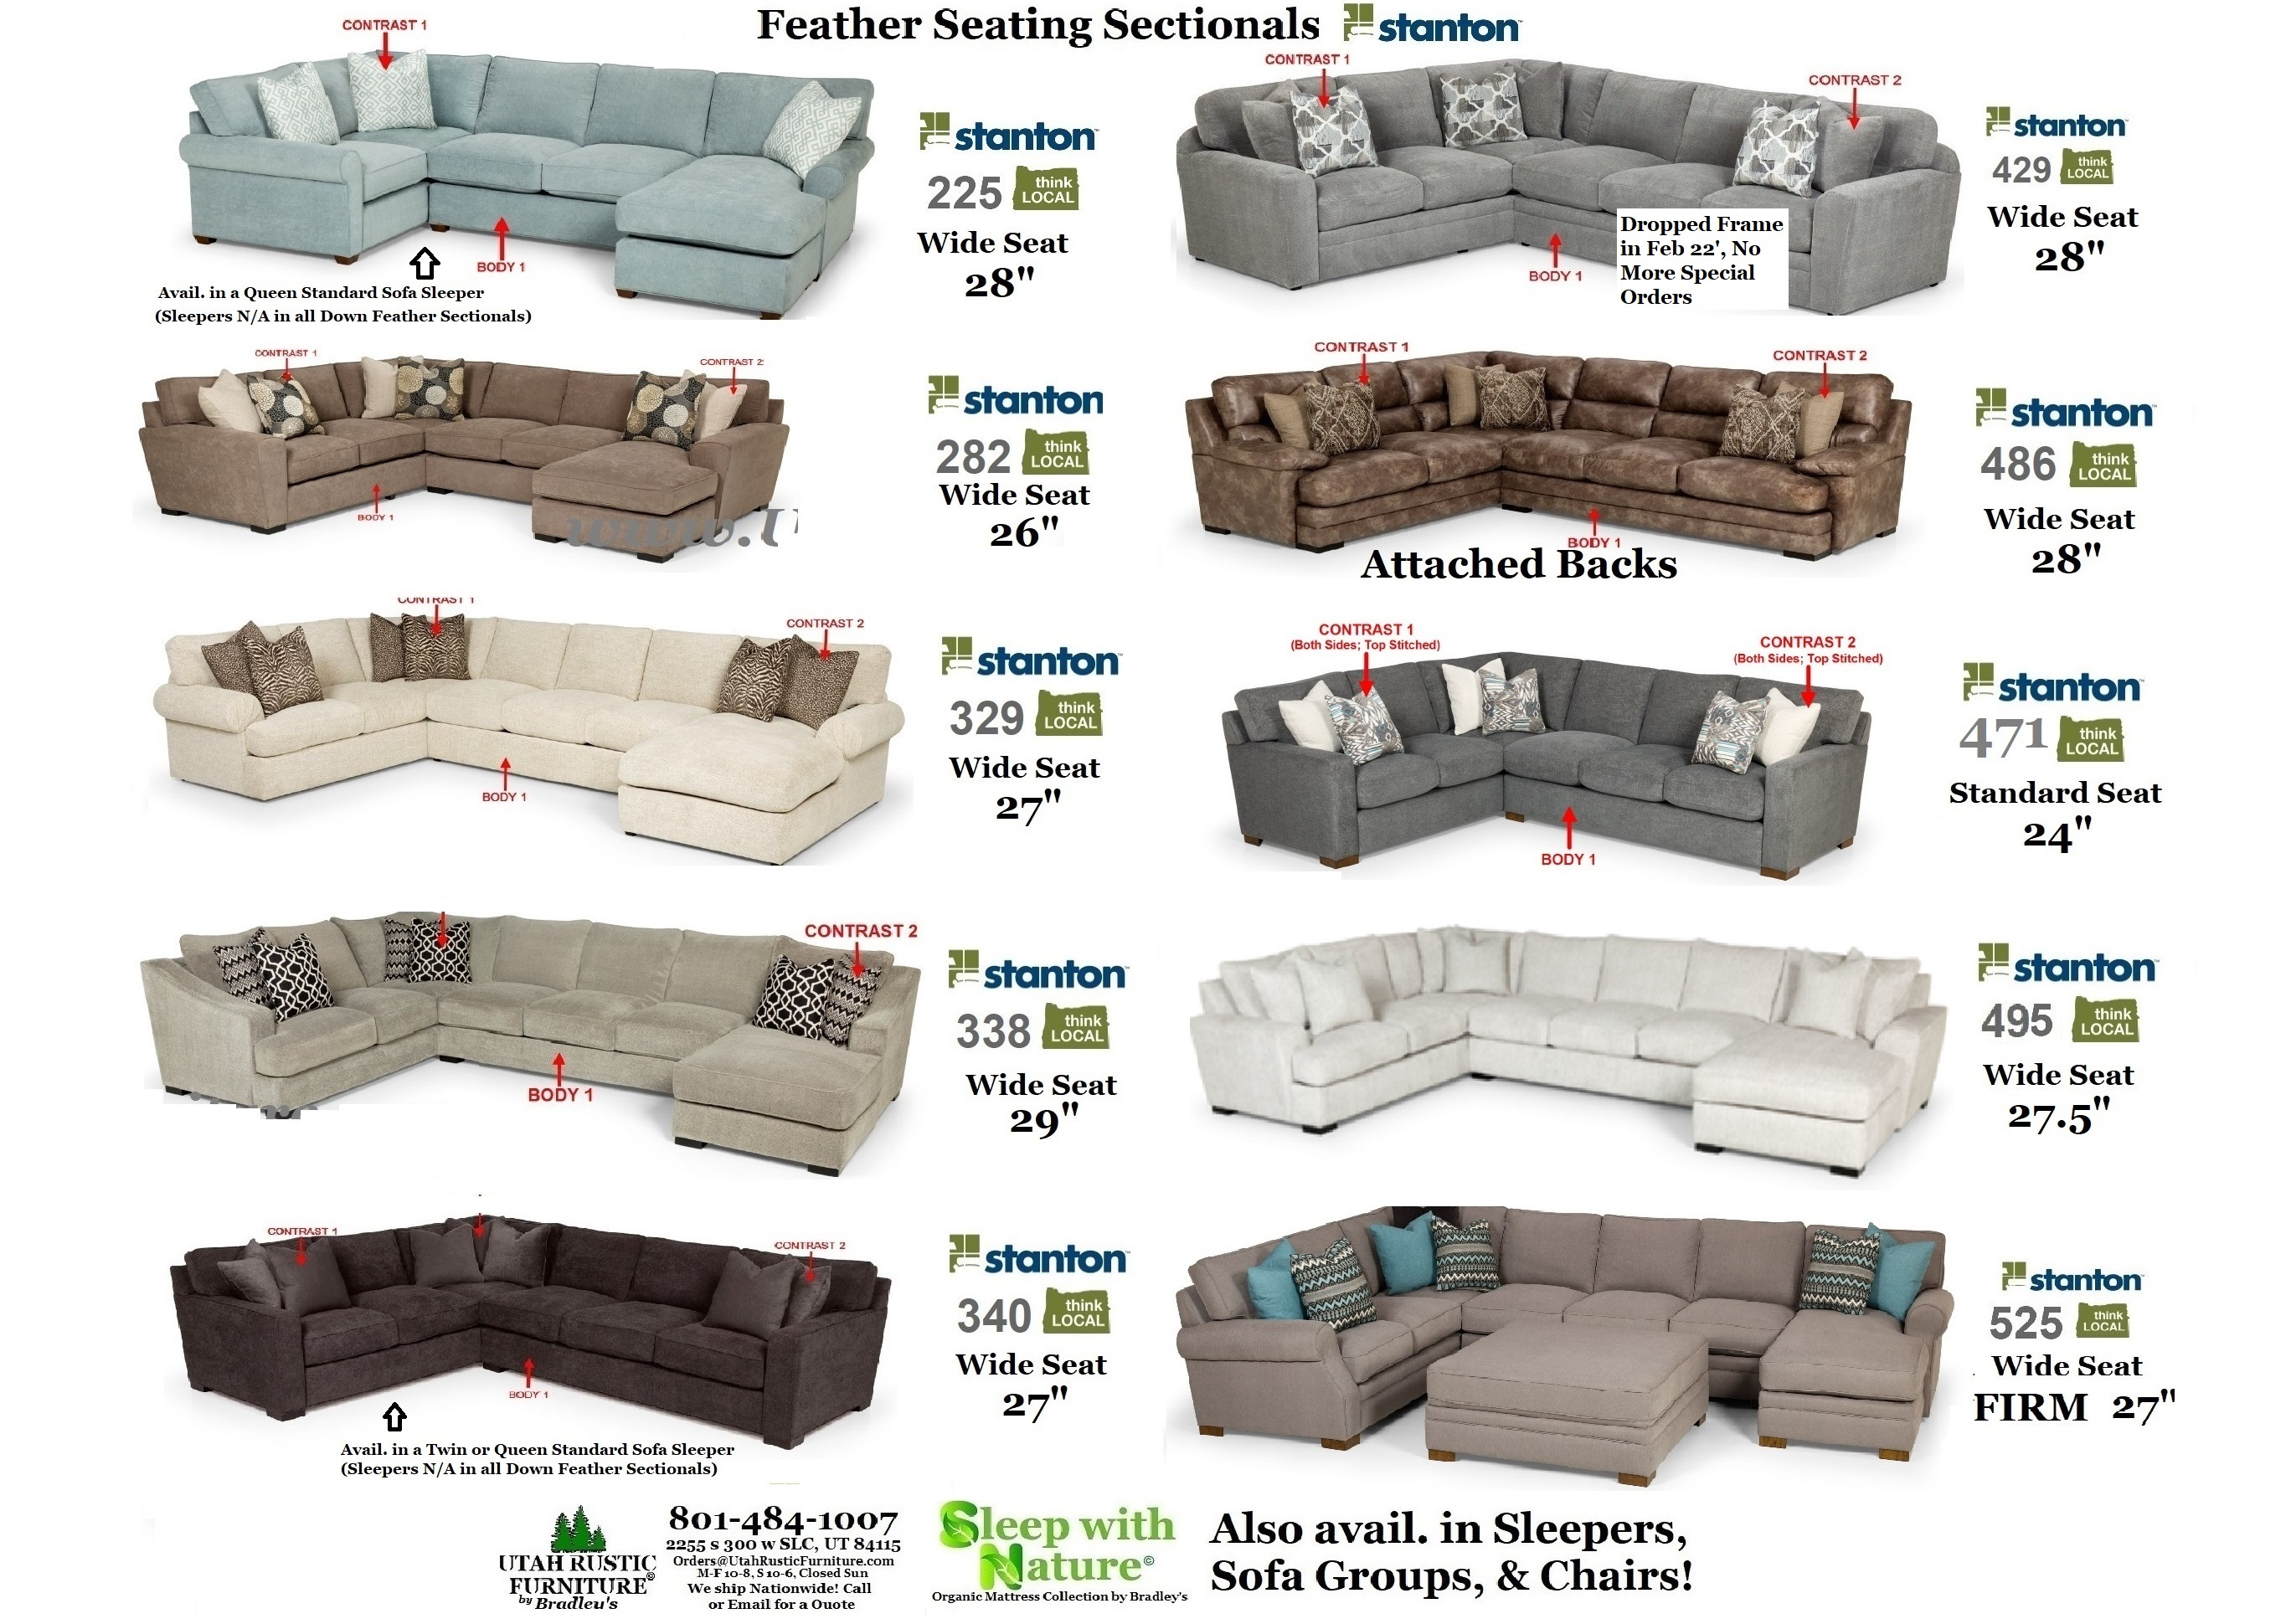 Outstanding Bradleys Furniture Etc Stanton Fabric And Leather Sofas Home Interior And Landscaping Dextoversignezvosmurscom